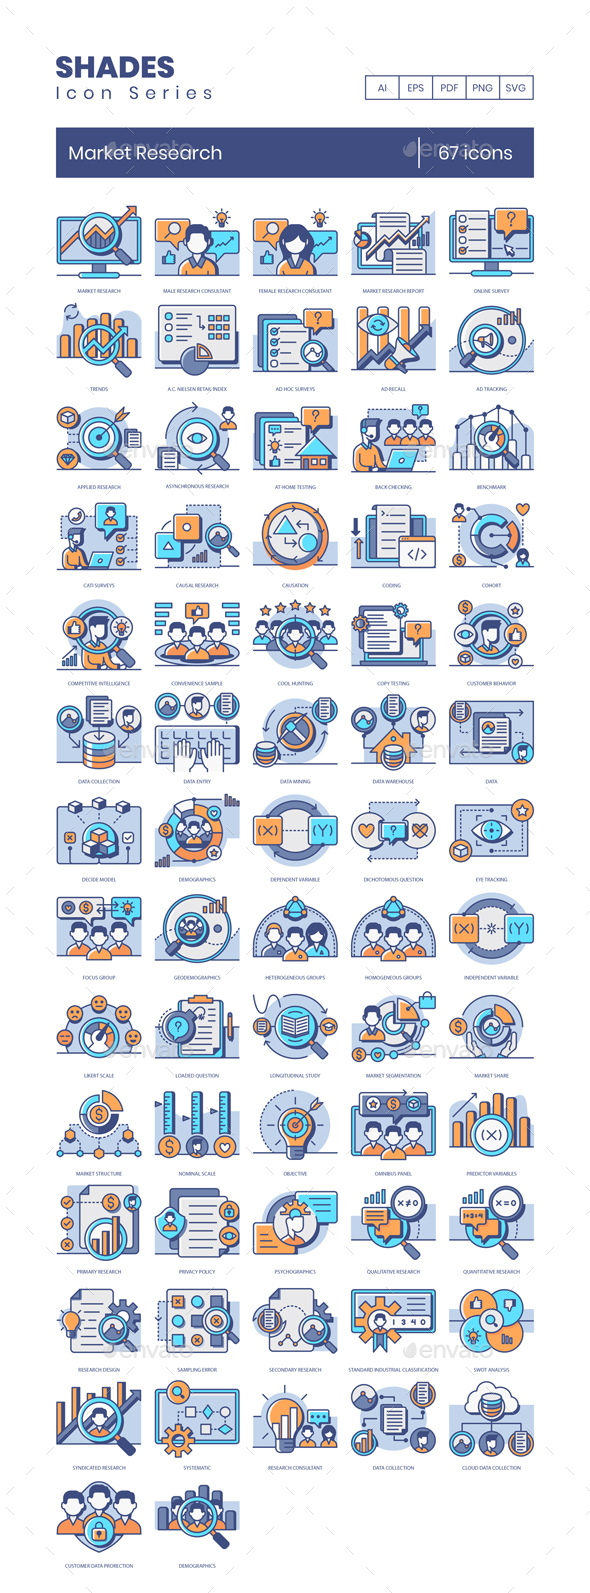 67 Market Research Icons - Shades Series